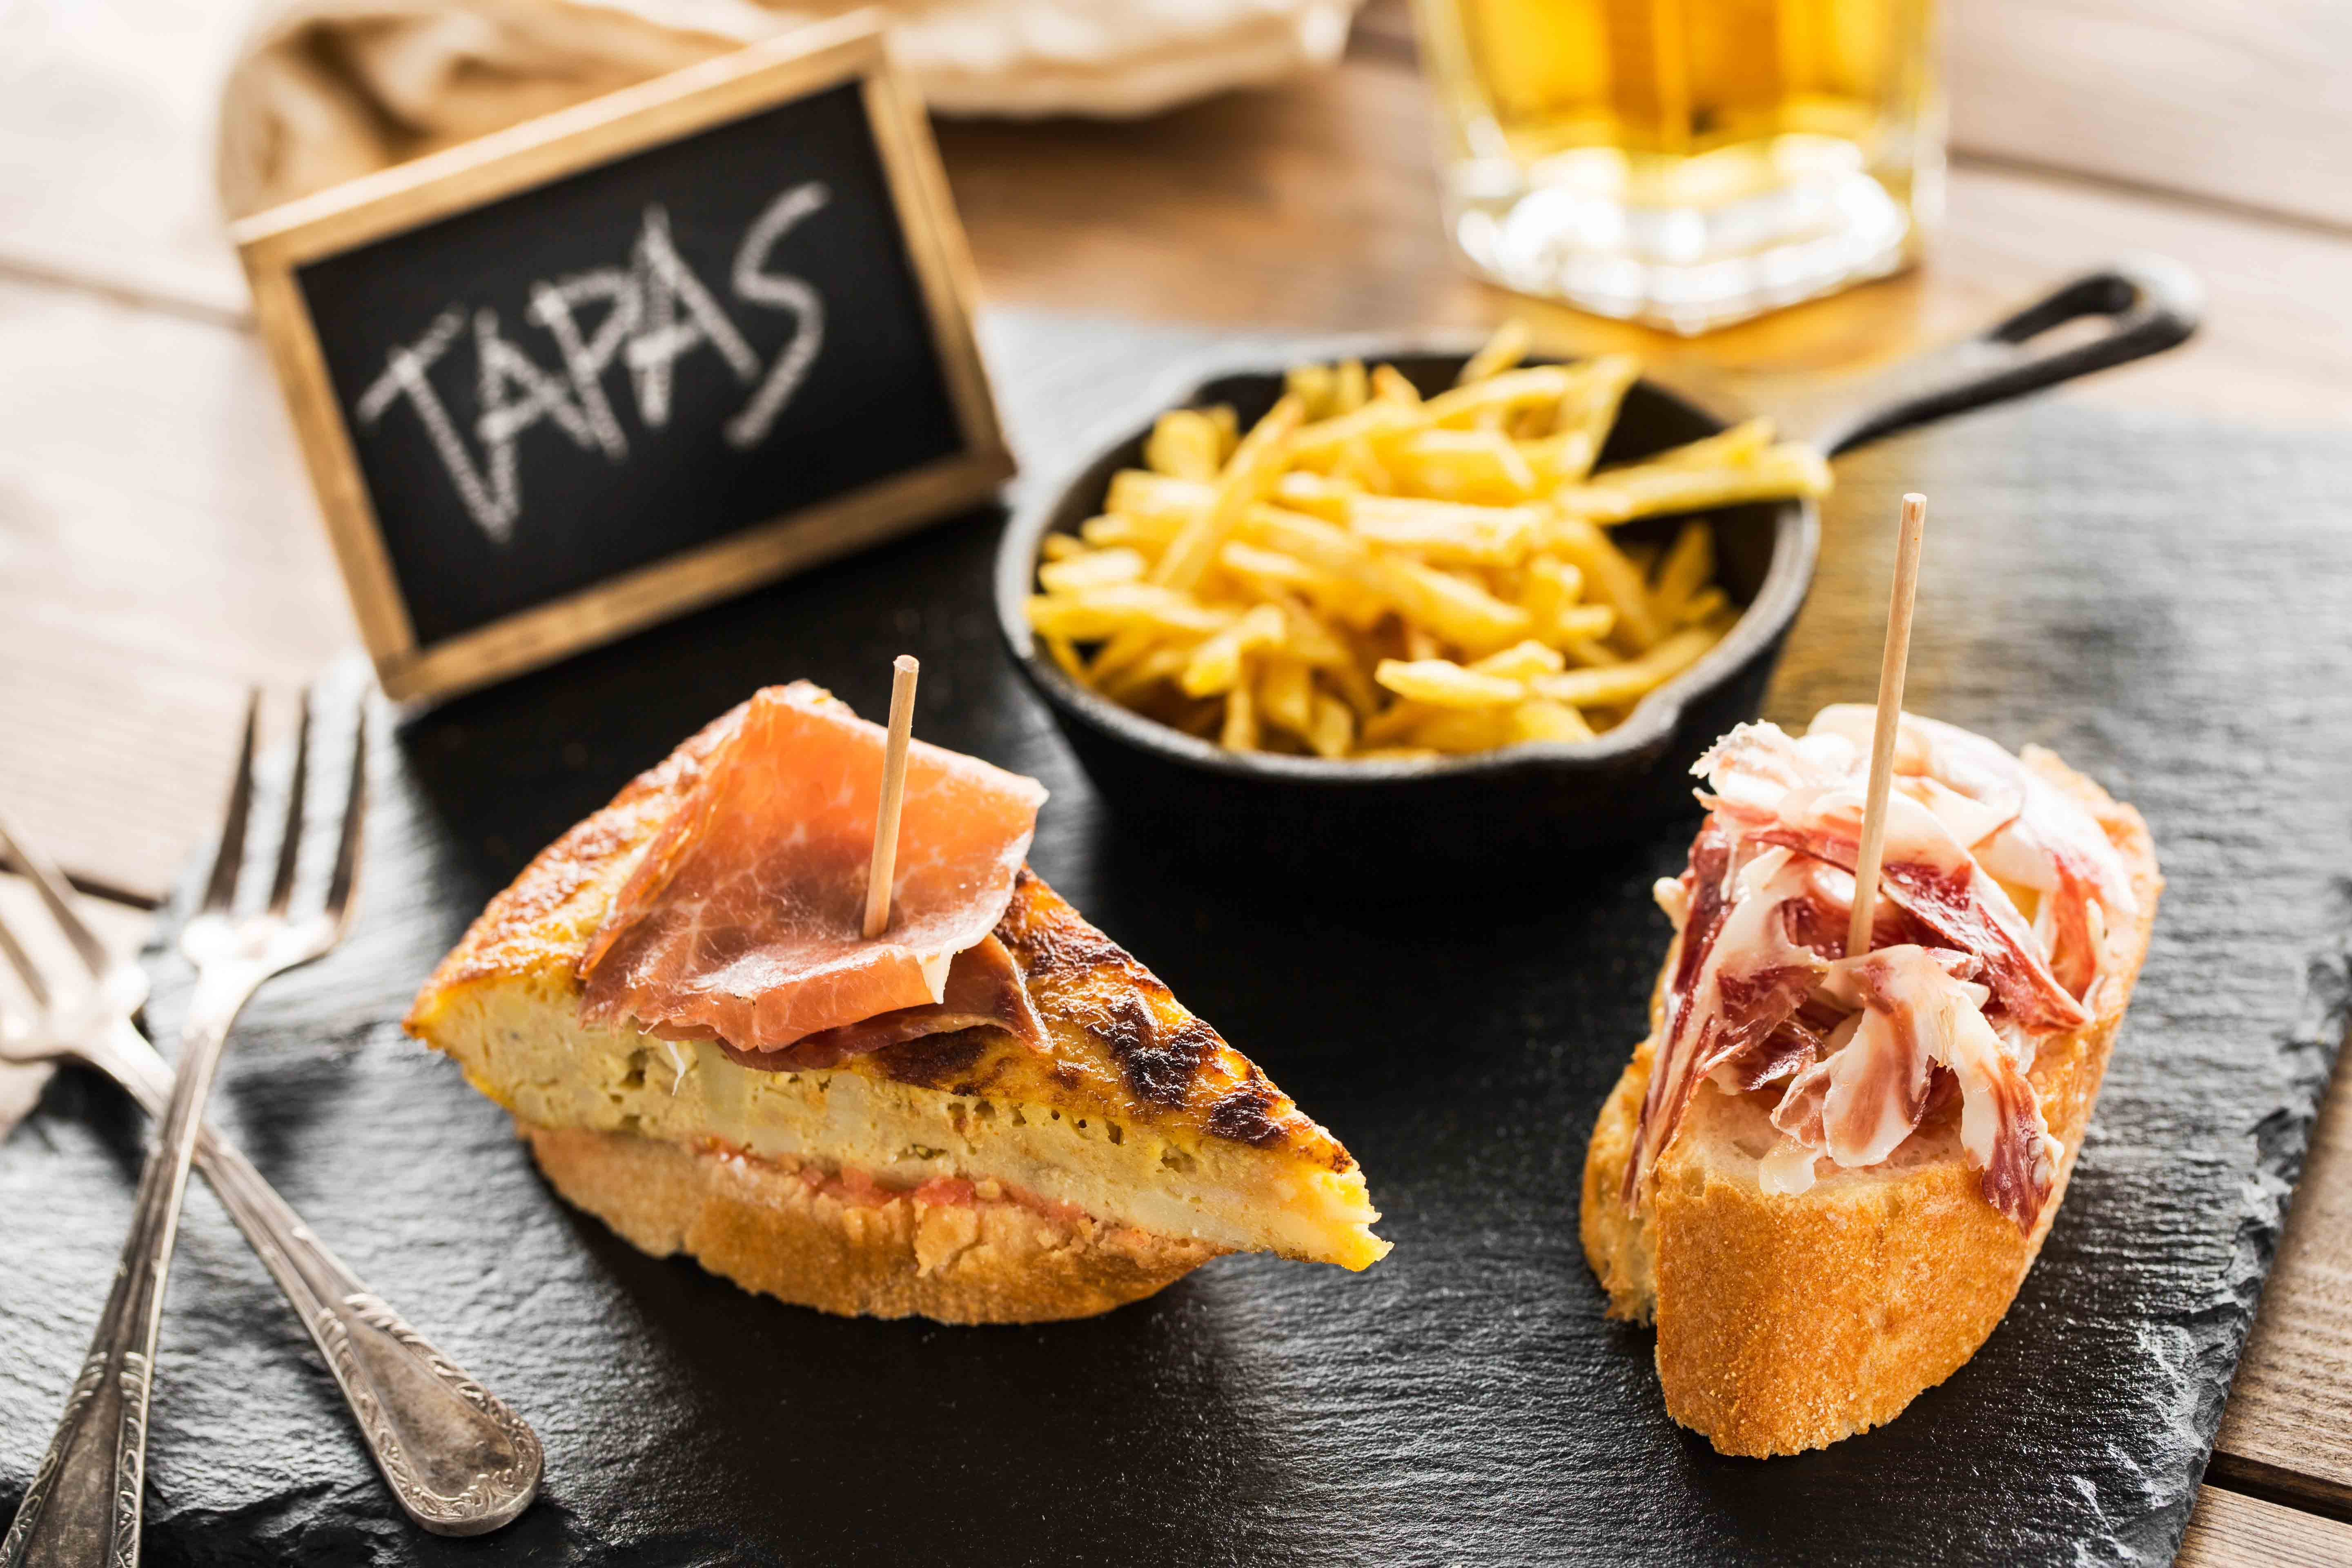 Fresh Tapas and Paella caterer on the Costa Blanca